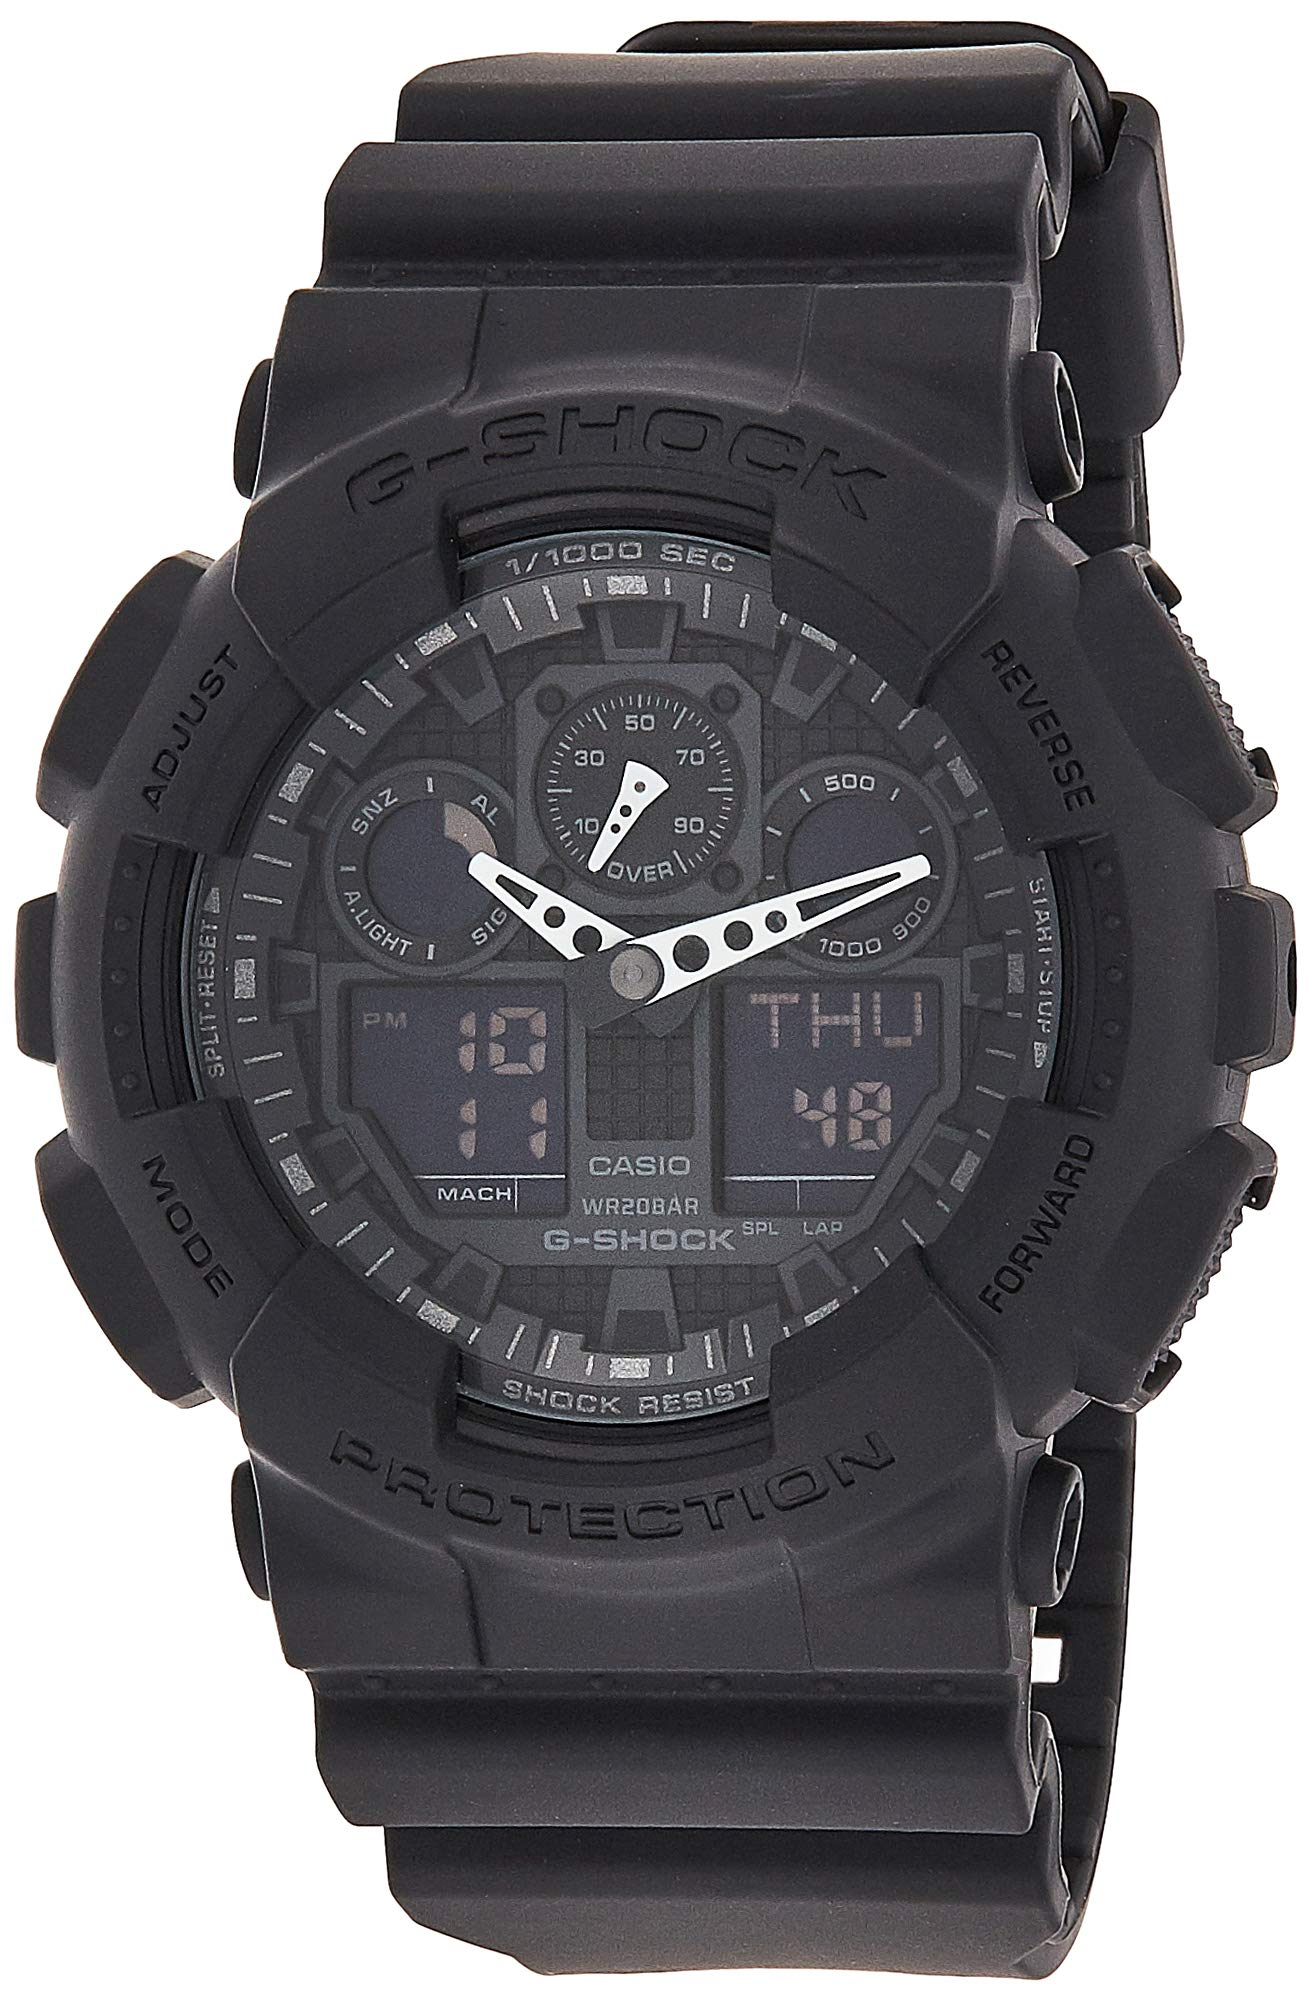 CDM product Casio Men's G-SHOCK - The GA 100-1A1 Military Series Watch in Black big image